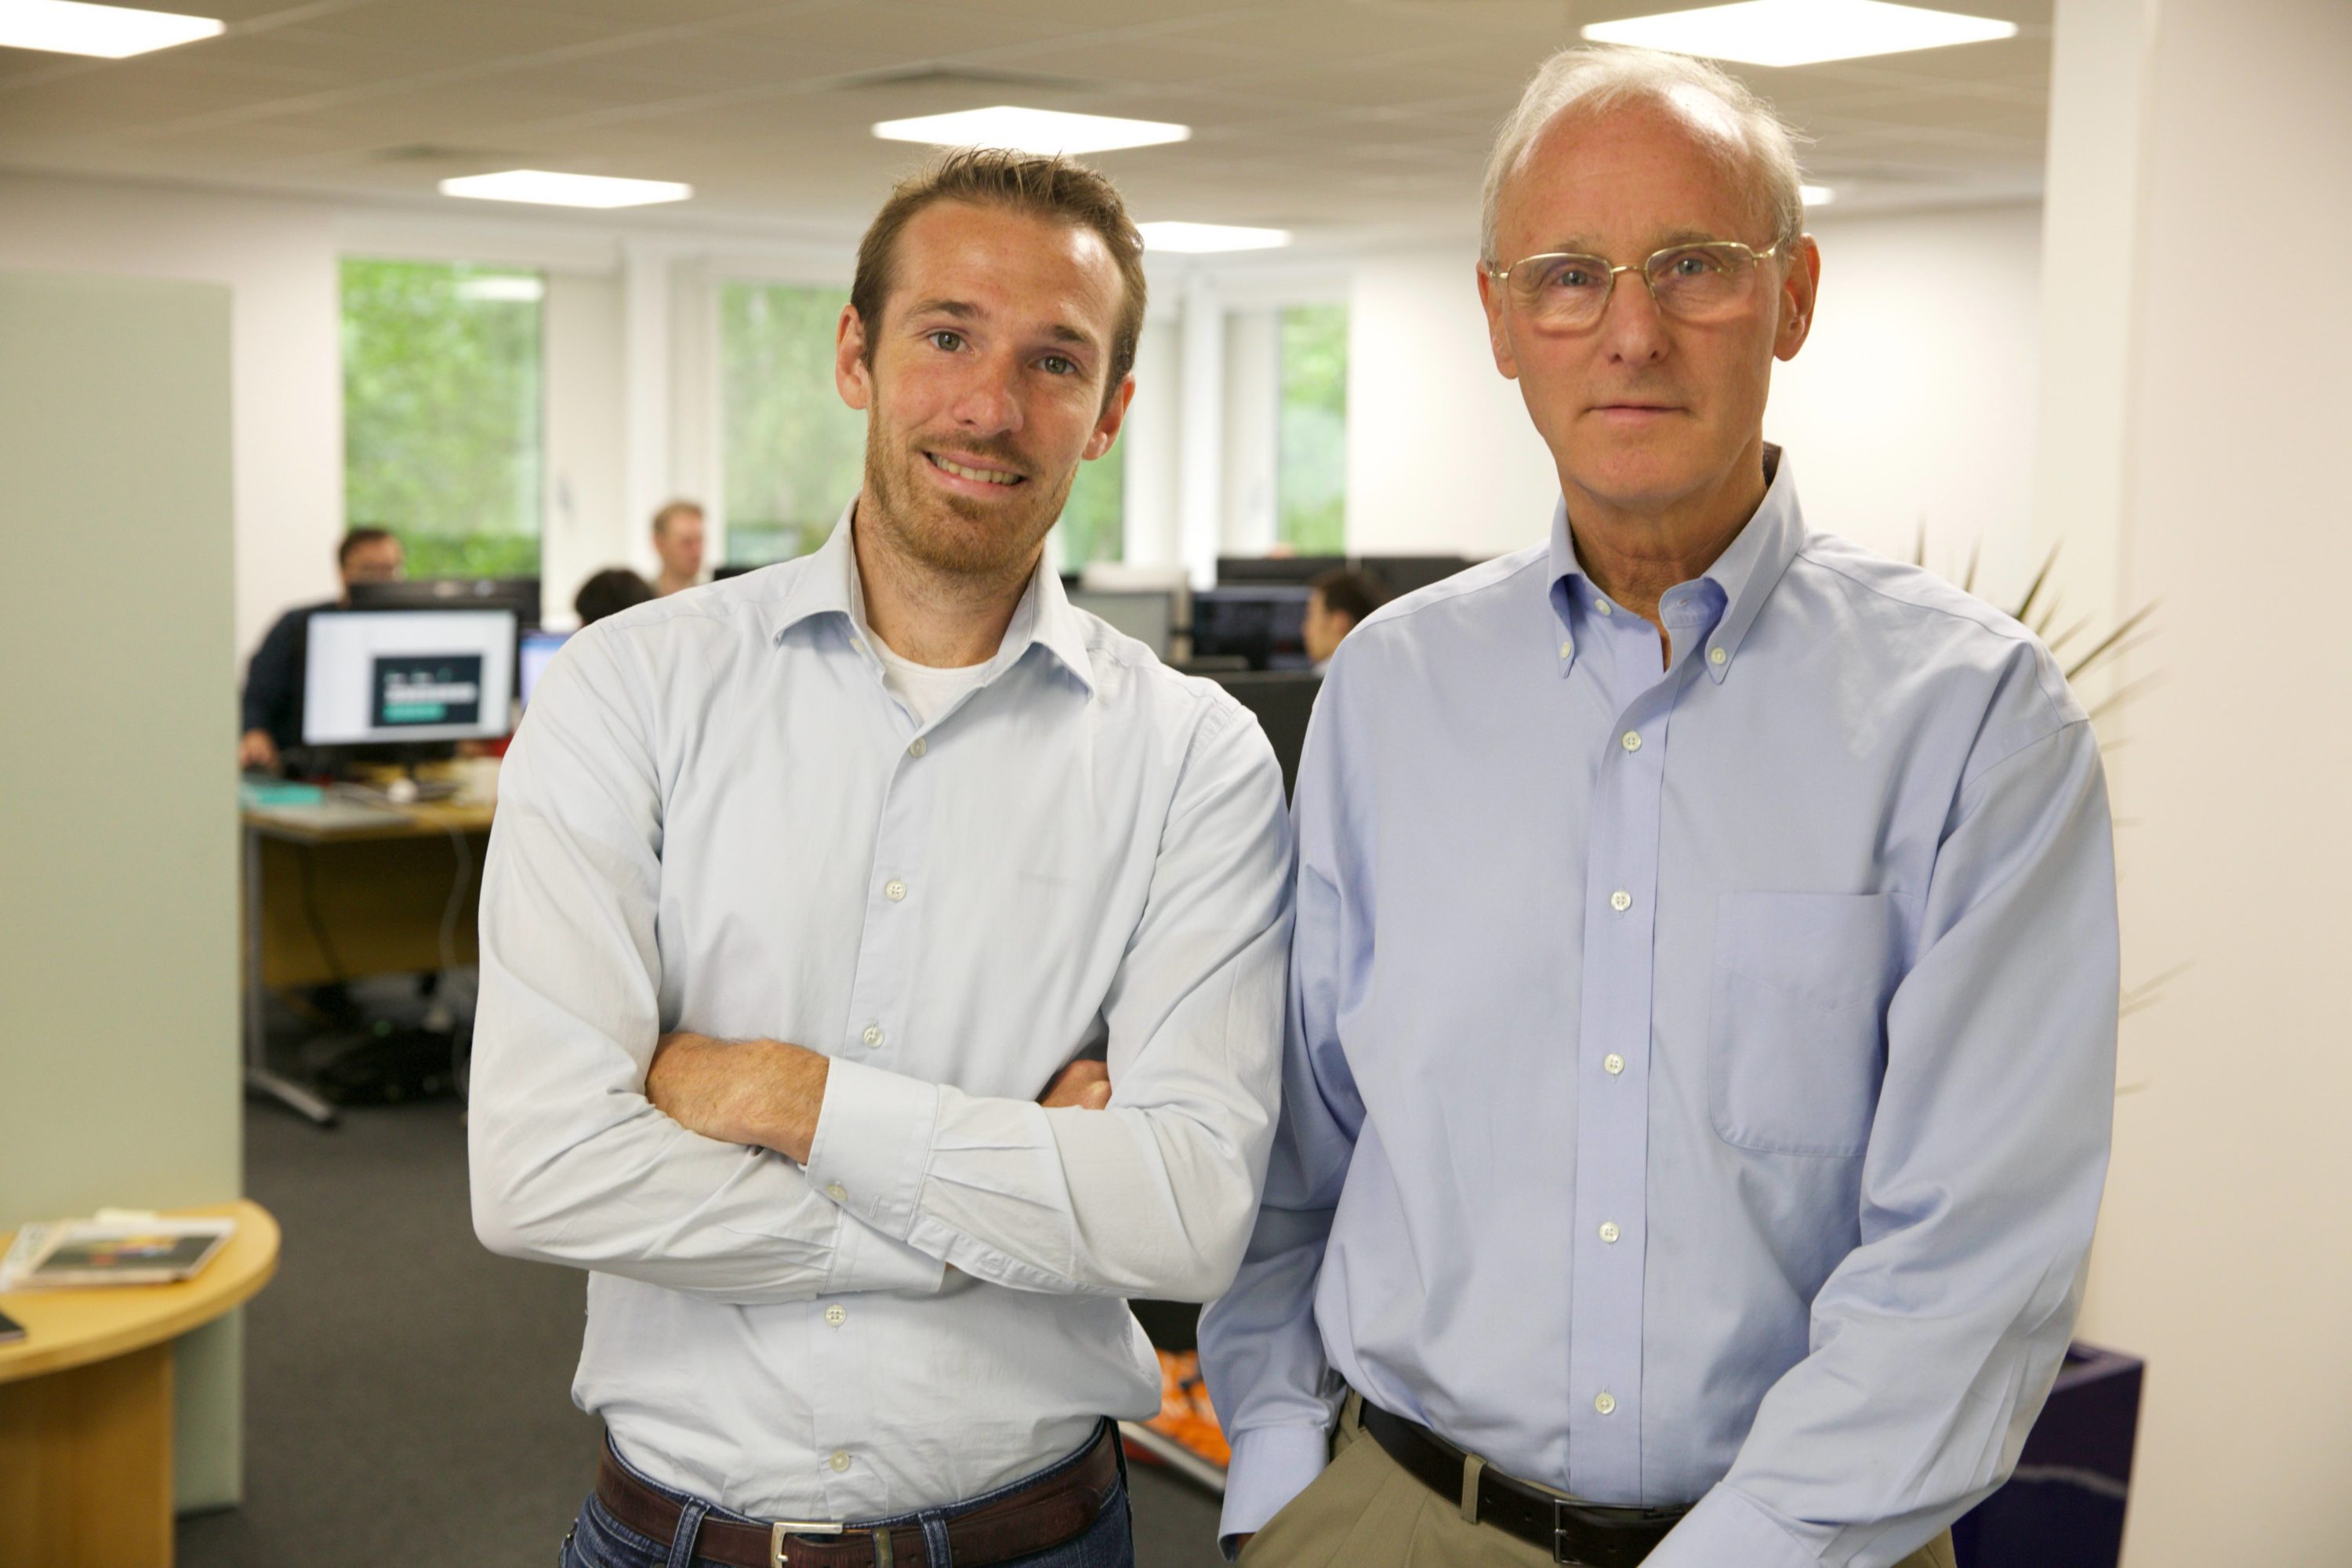 Healx secures £7.67 million Series A investment led by Balderton Capital